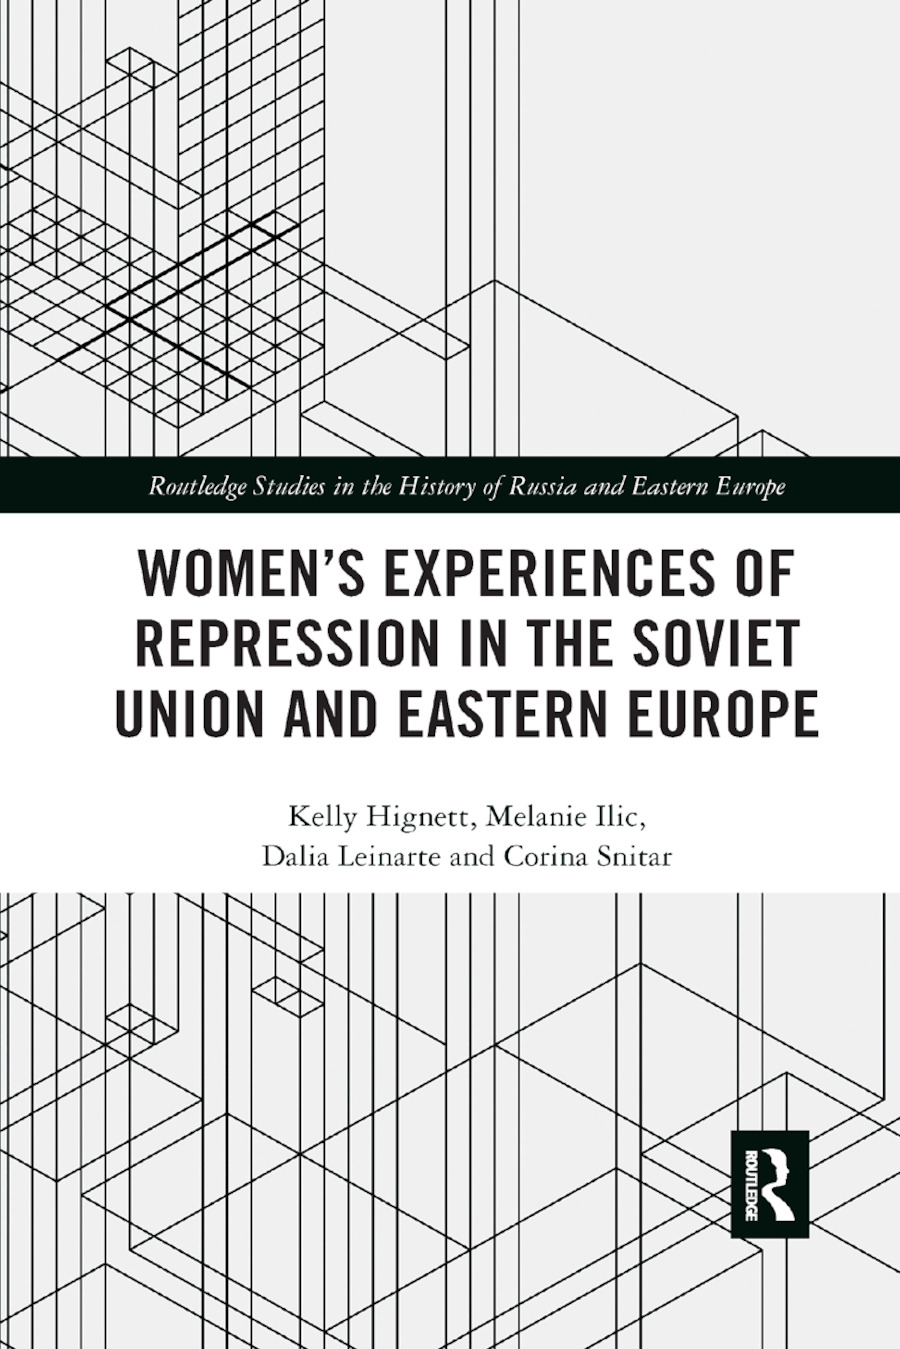 Women's Experiences of Repression in the Soviet Union and Eastern Europe book cover